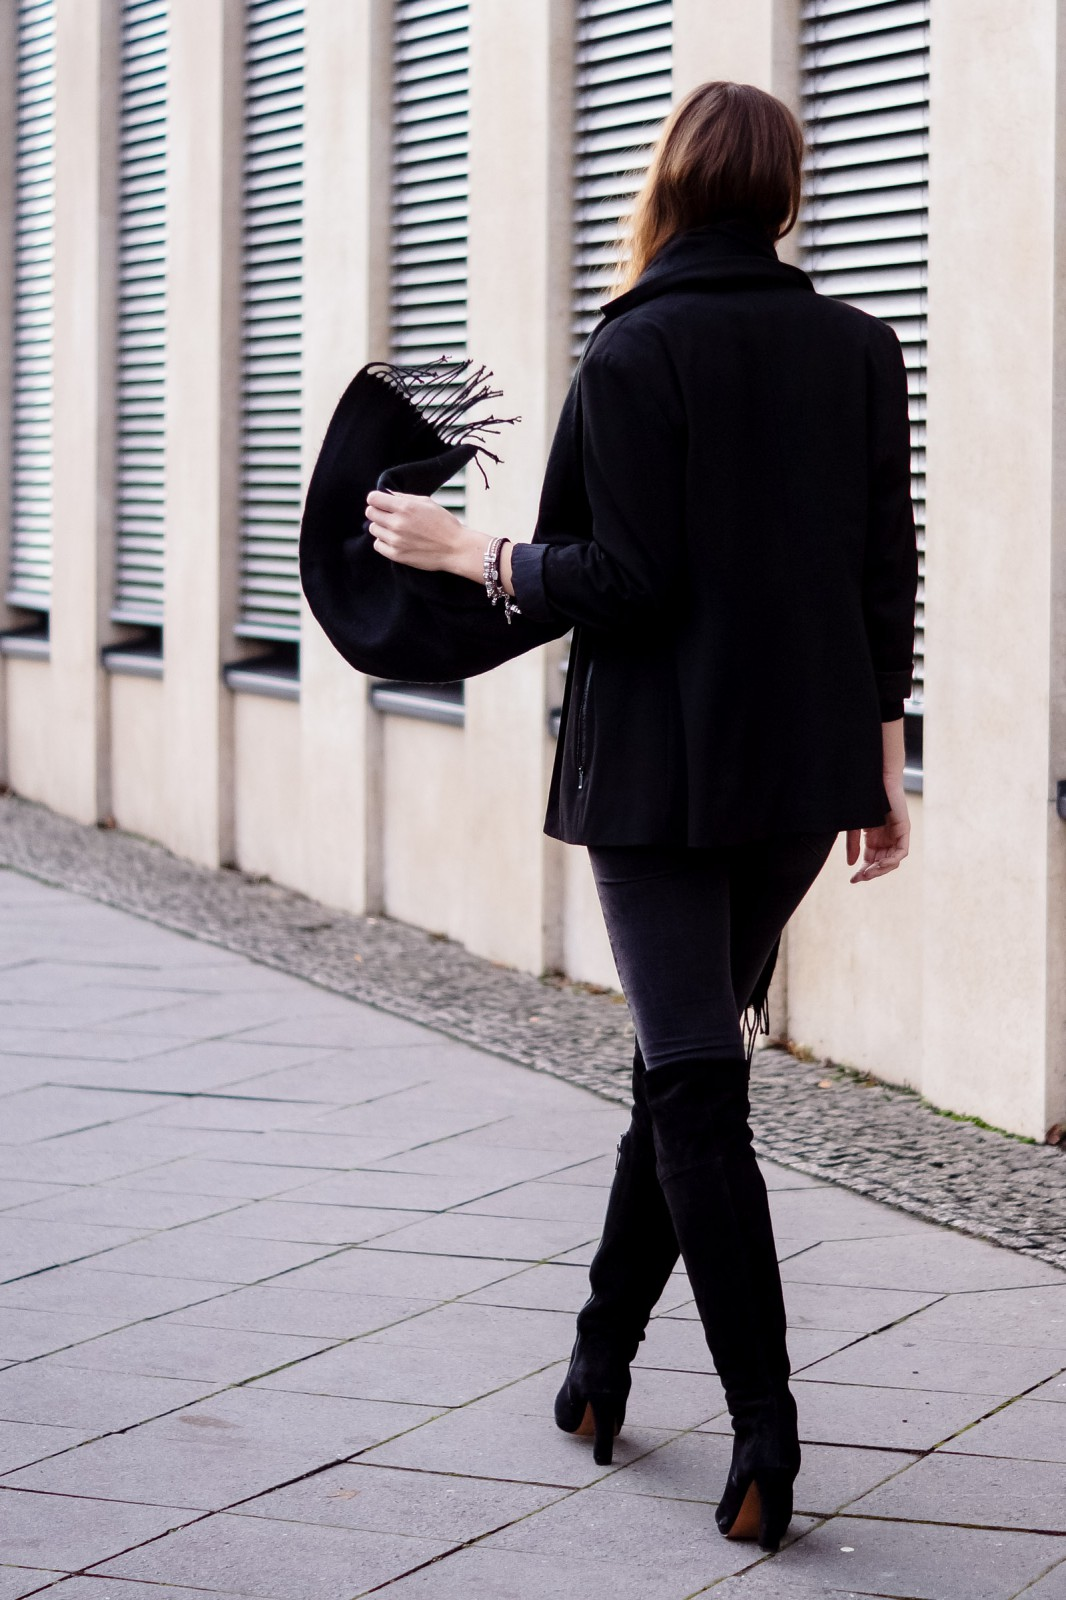 Schwarz-graues Winter Outfit